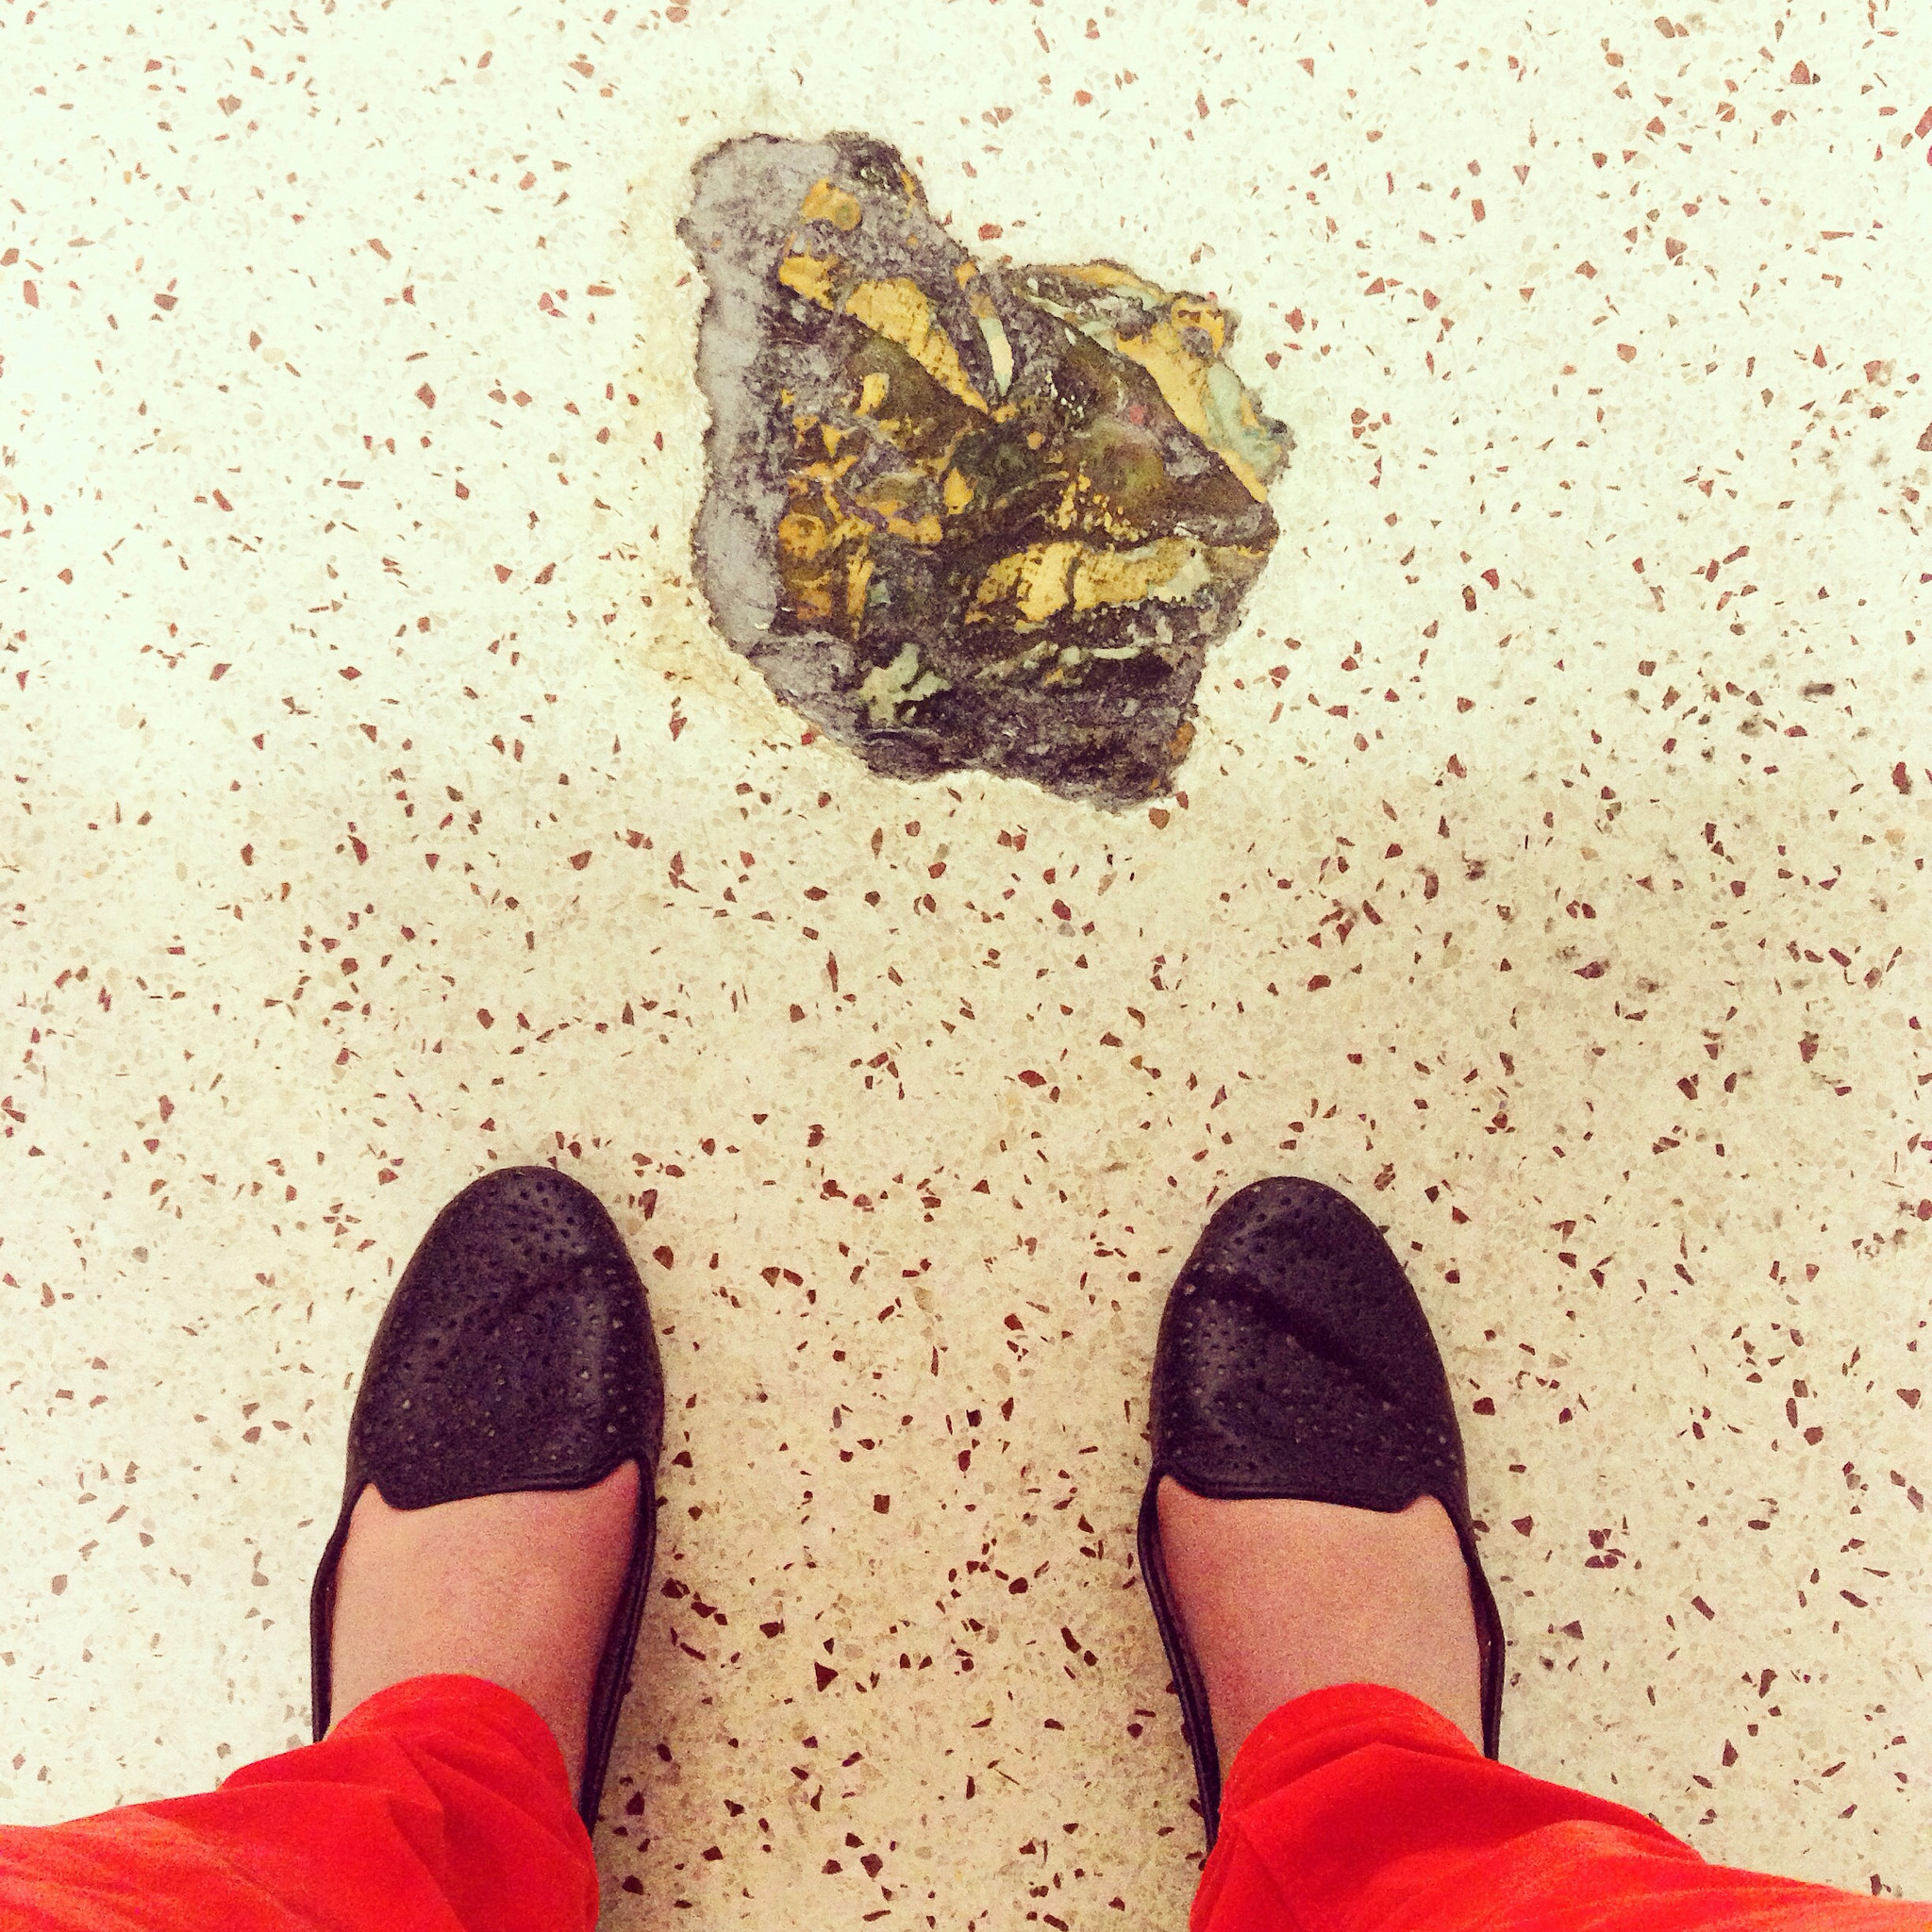 This is embedded floor art that looks like poop in a Denver International Airport bathroom.